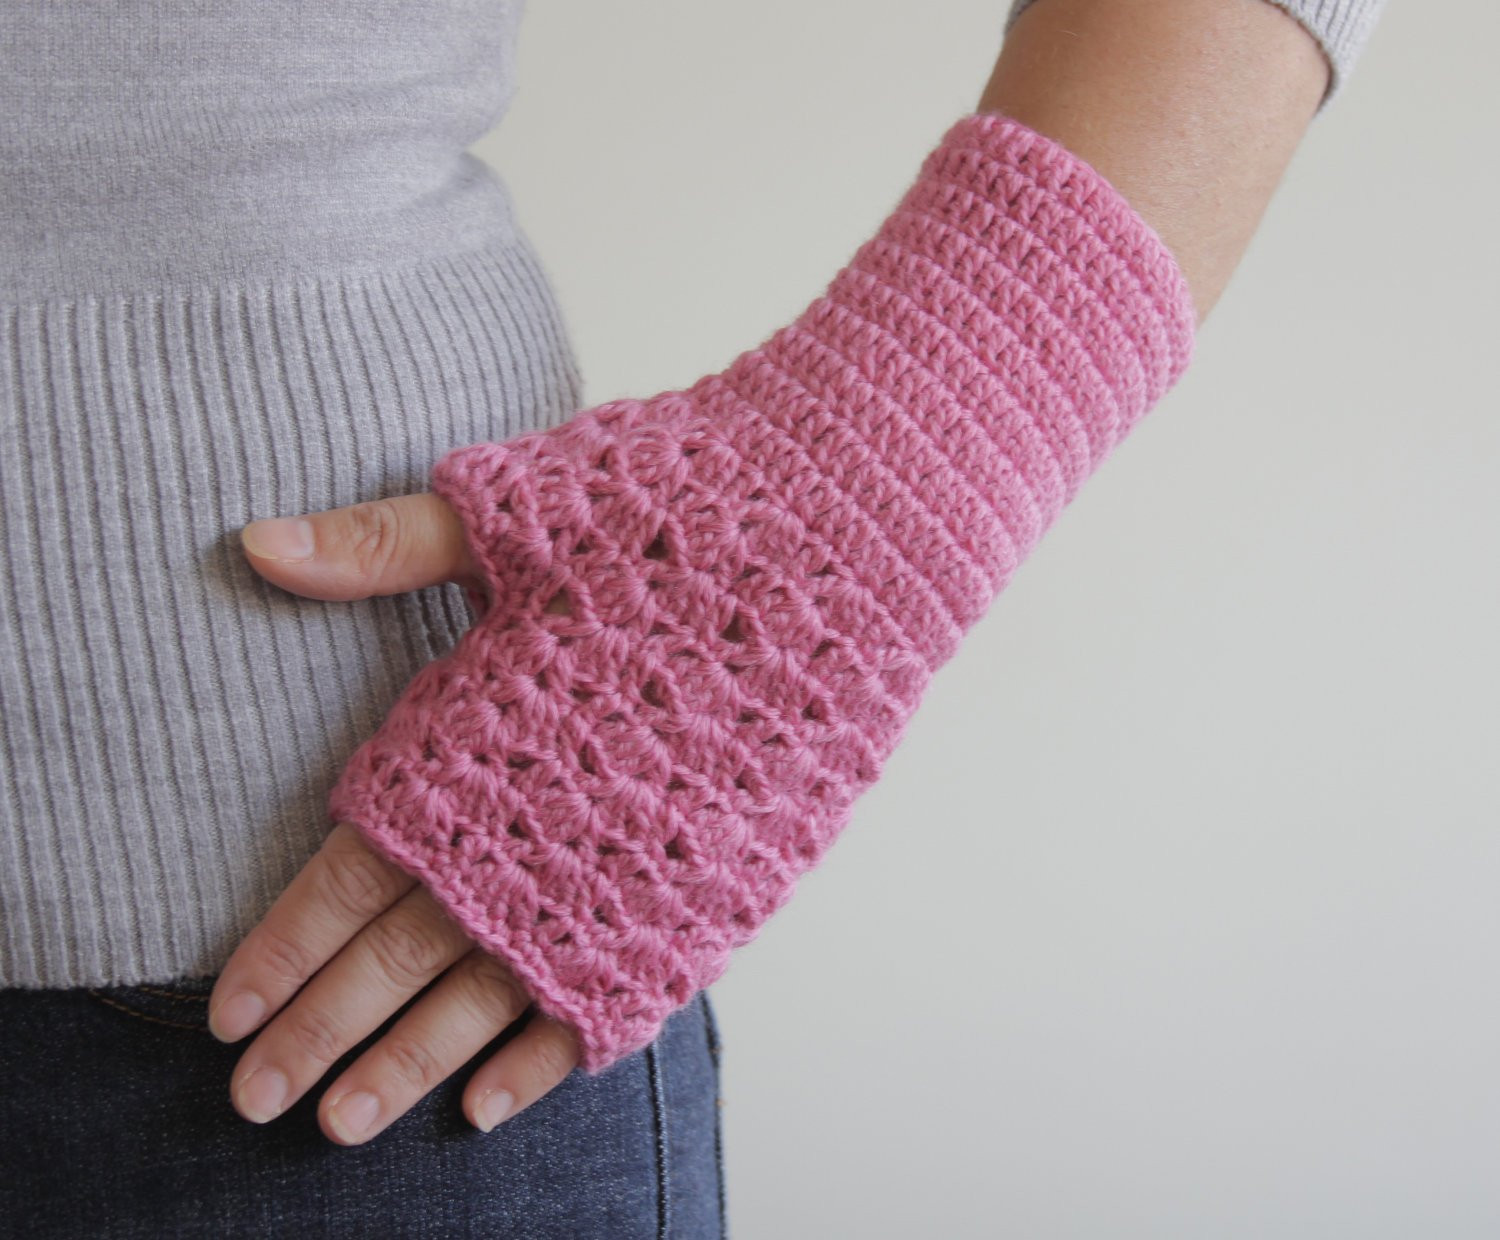 Crochet Mittens Best Of Fingerless Gloves for Women Pink Crochet Mitten Crochet Of Brilliant 48 Pictures Crochet Mittens